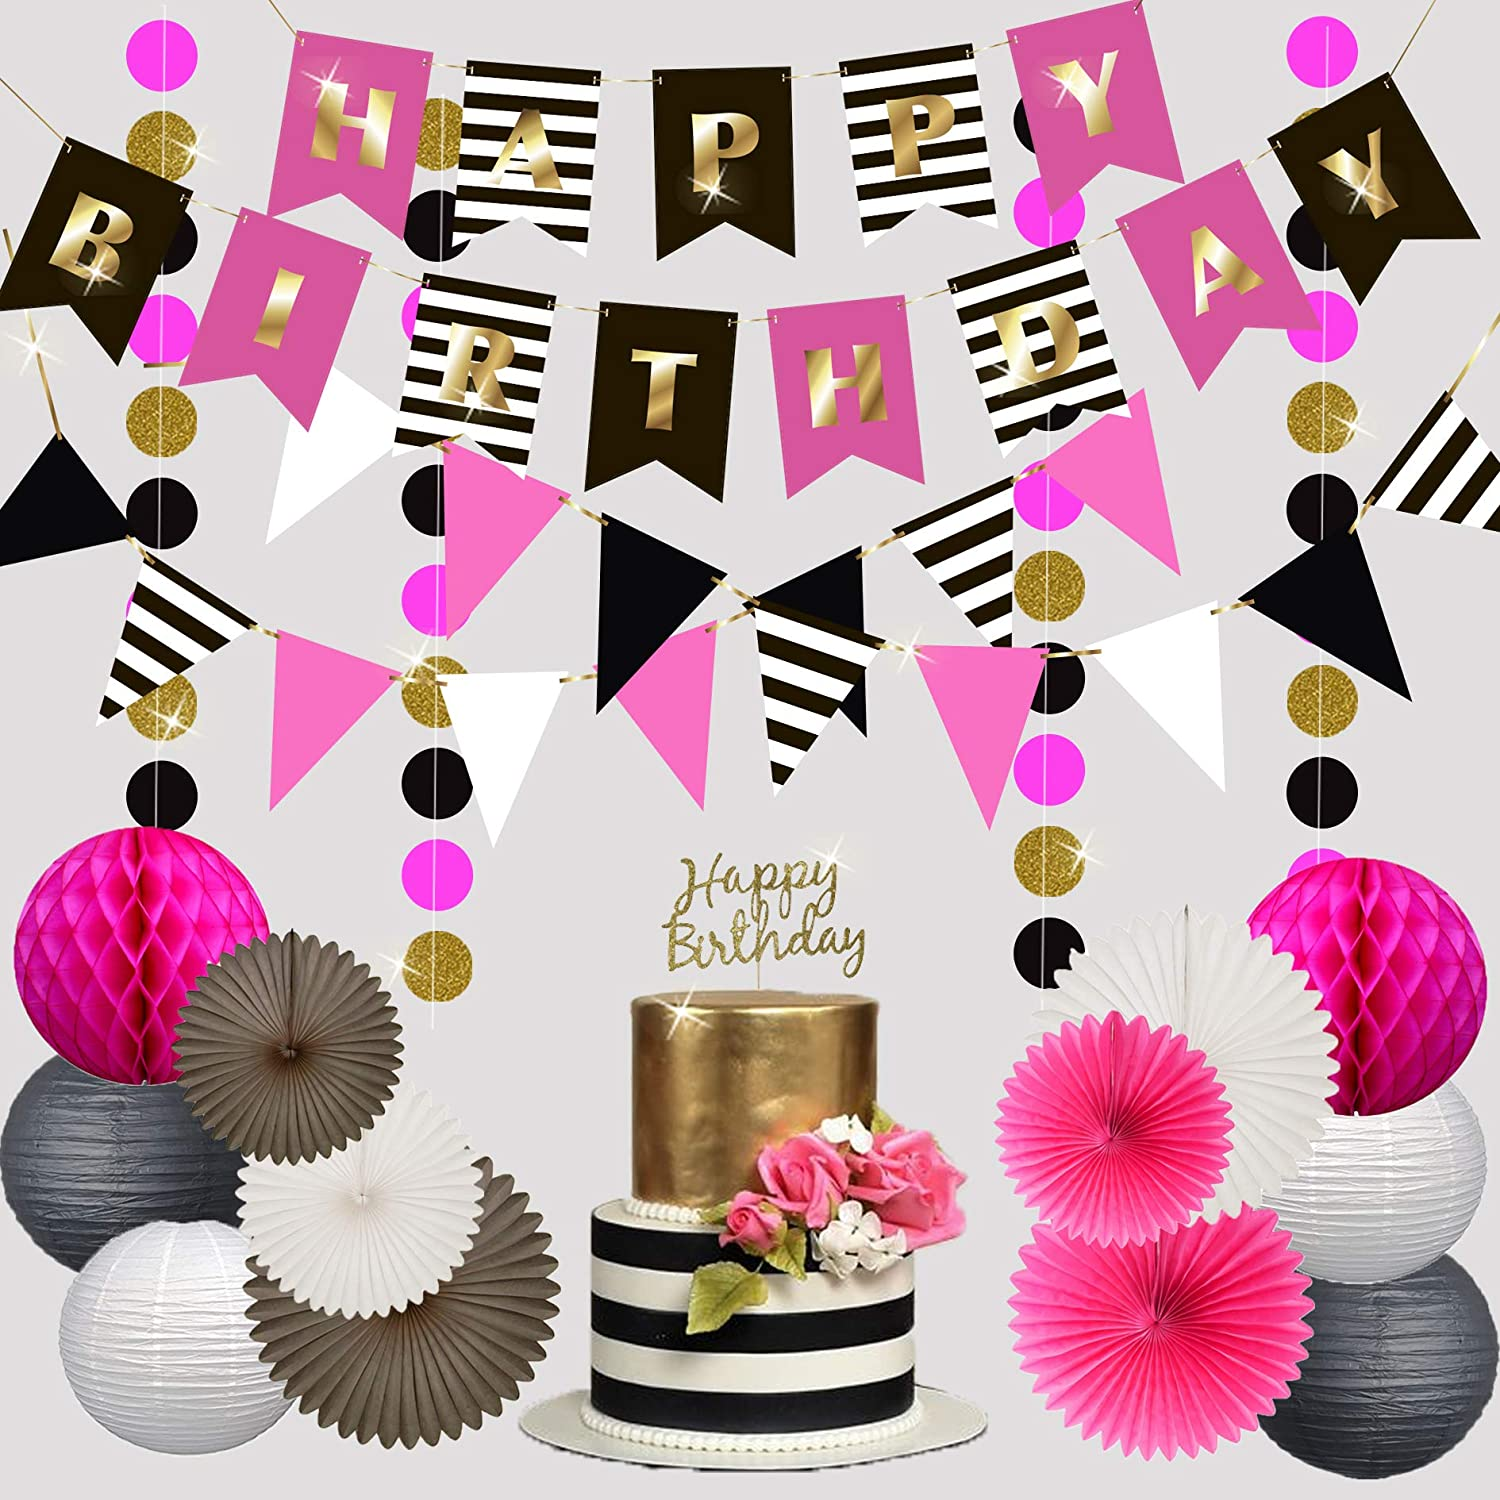 Premium happy birthday decorations for girls women party set kit hot pink gold black white kate spade inspired banner garland bunting paper lanterns